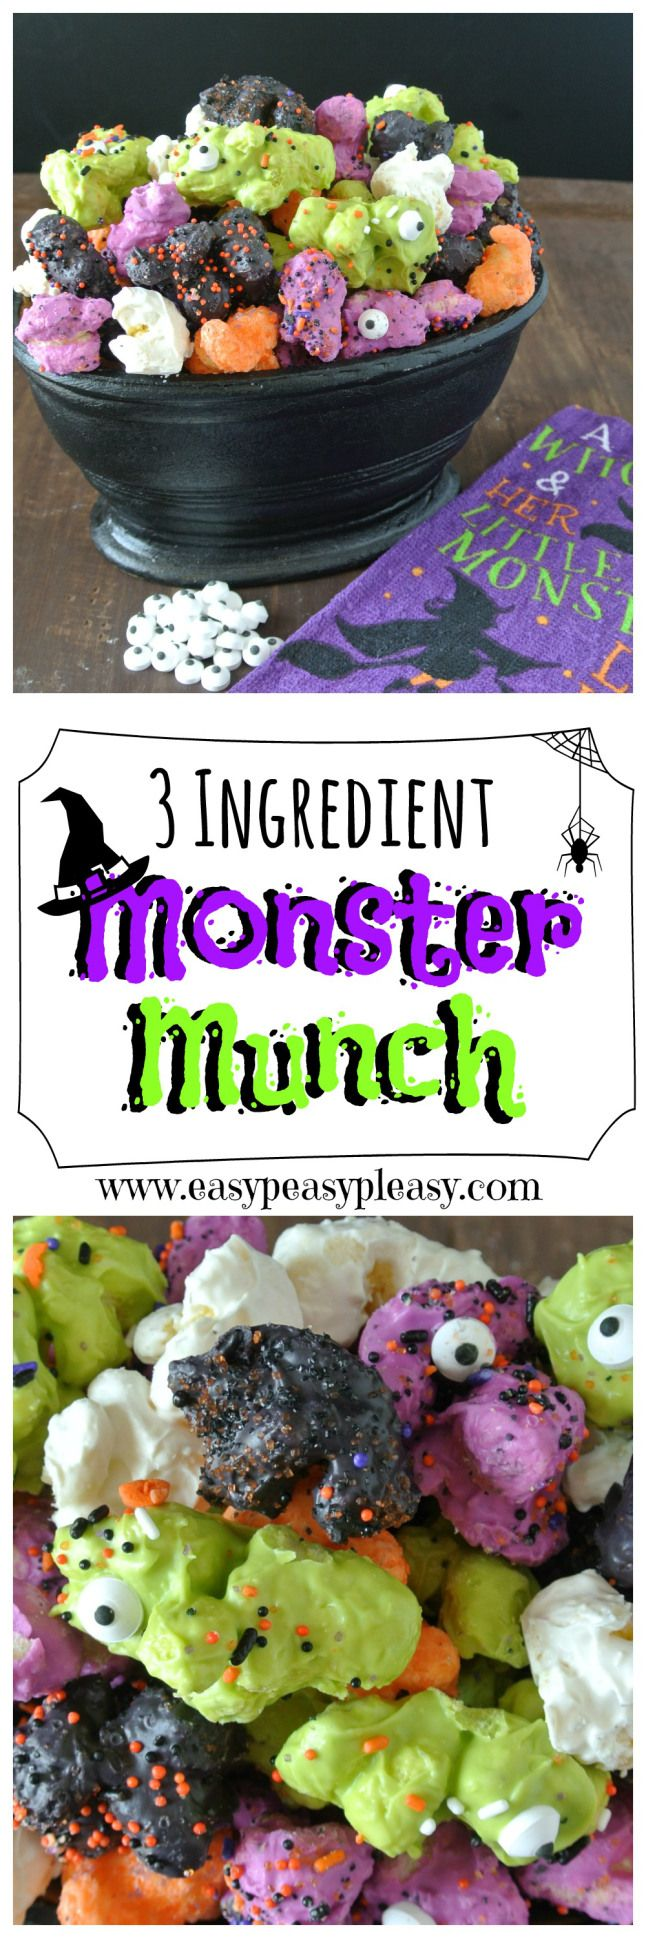 No popcorn here...3 Ingredient Monster Munch is the perfect Halloween Treat!